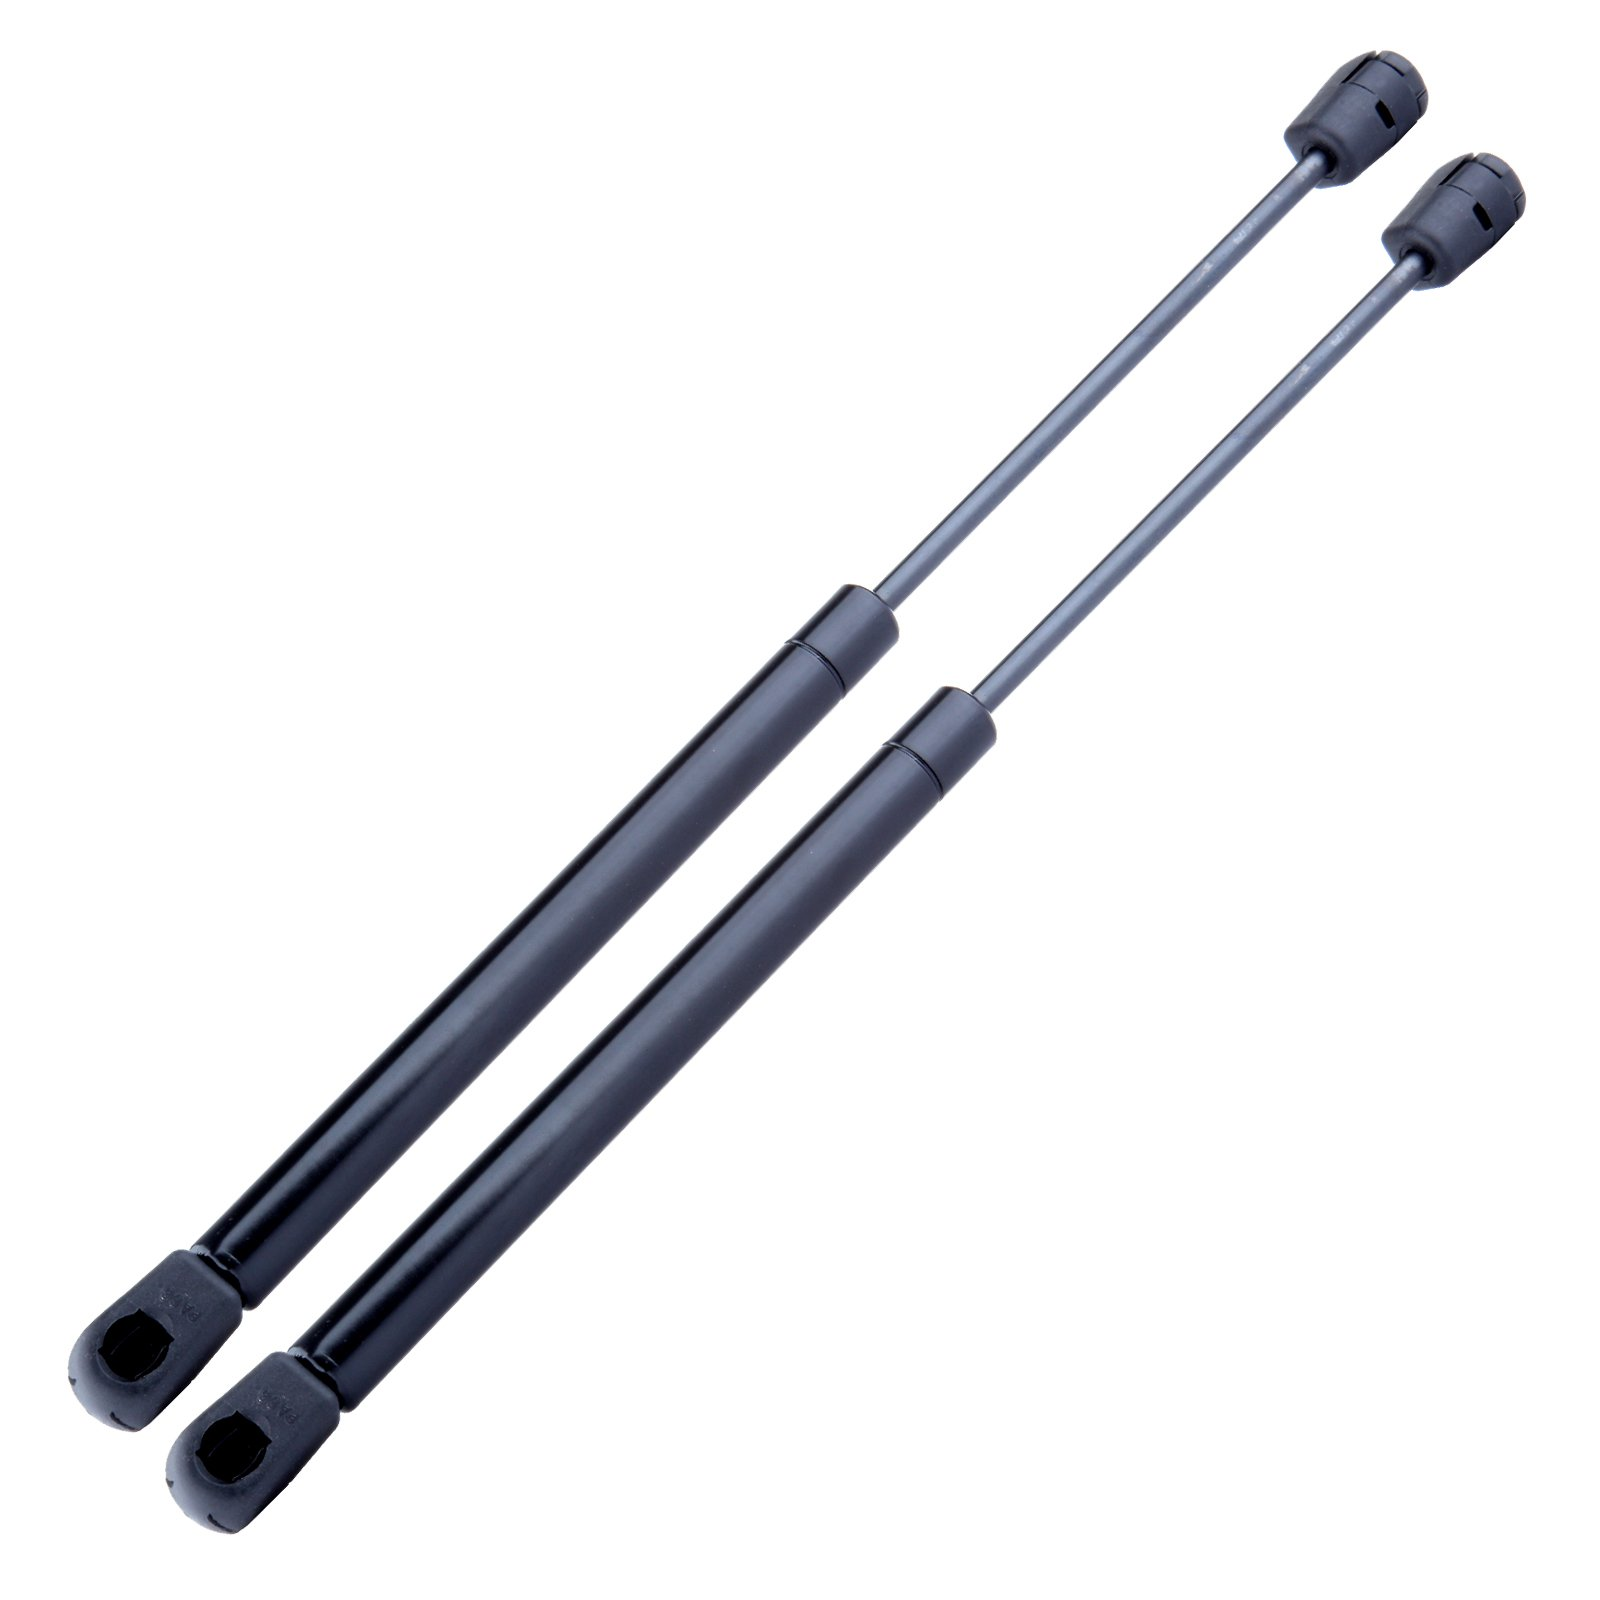 Lift Supports,ECCPP Front Hood Lift Support Struts Gas Springs for 2005-2010 Jeep Grand Cherokee Compatible with 6304 Strut Set of 2